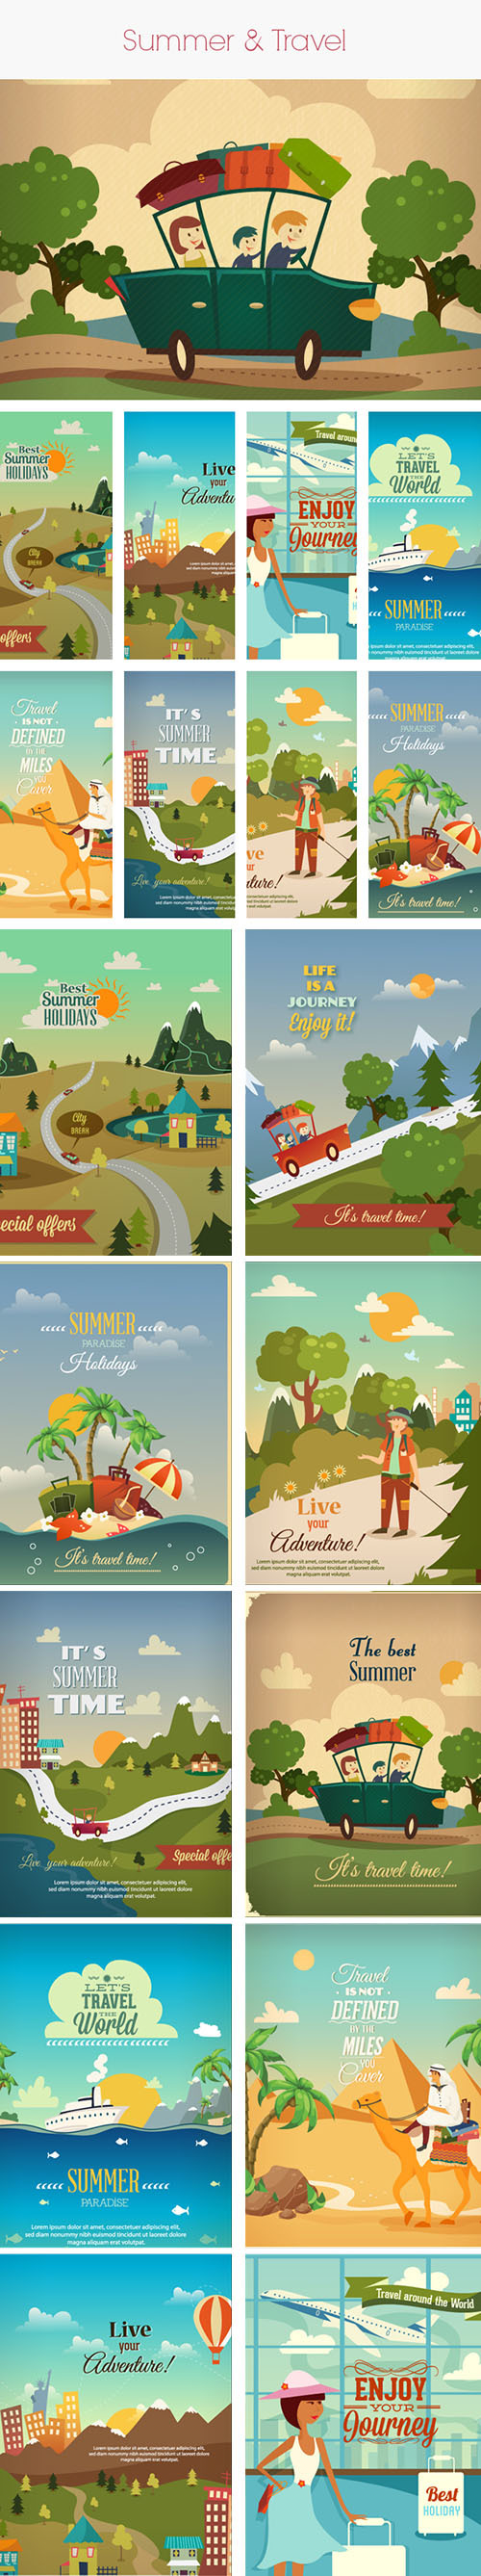 Vintage Summer and Travel Vector Stock Illustrations Pack